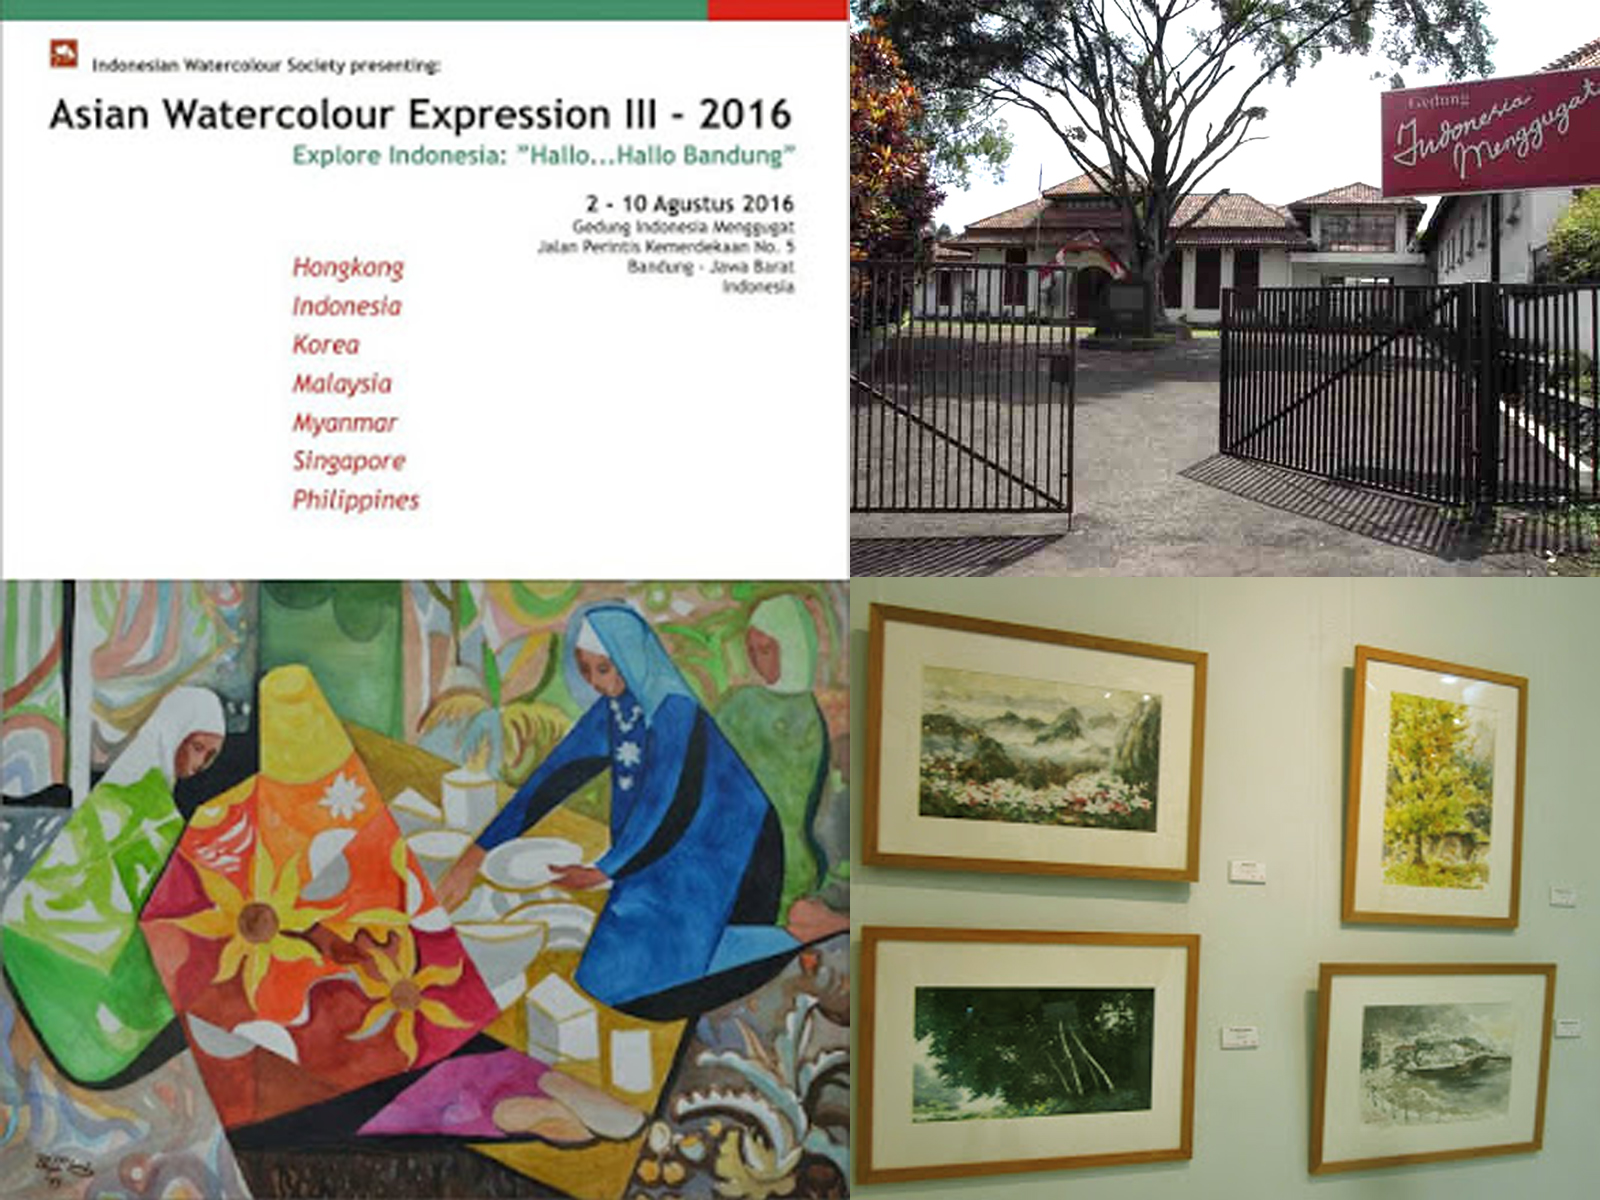 Asian Water Color Expression III - 2016 Bandung